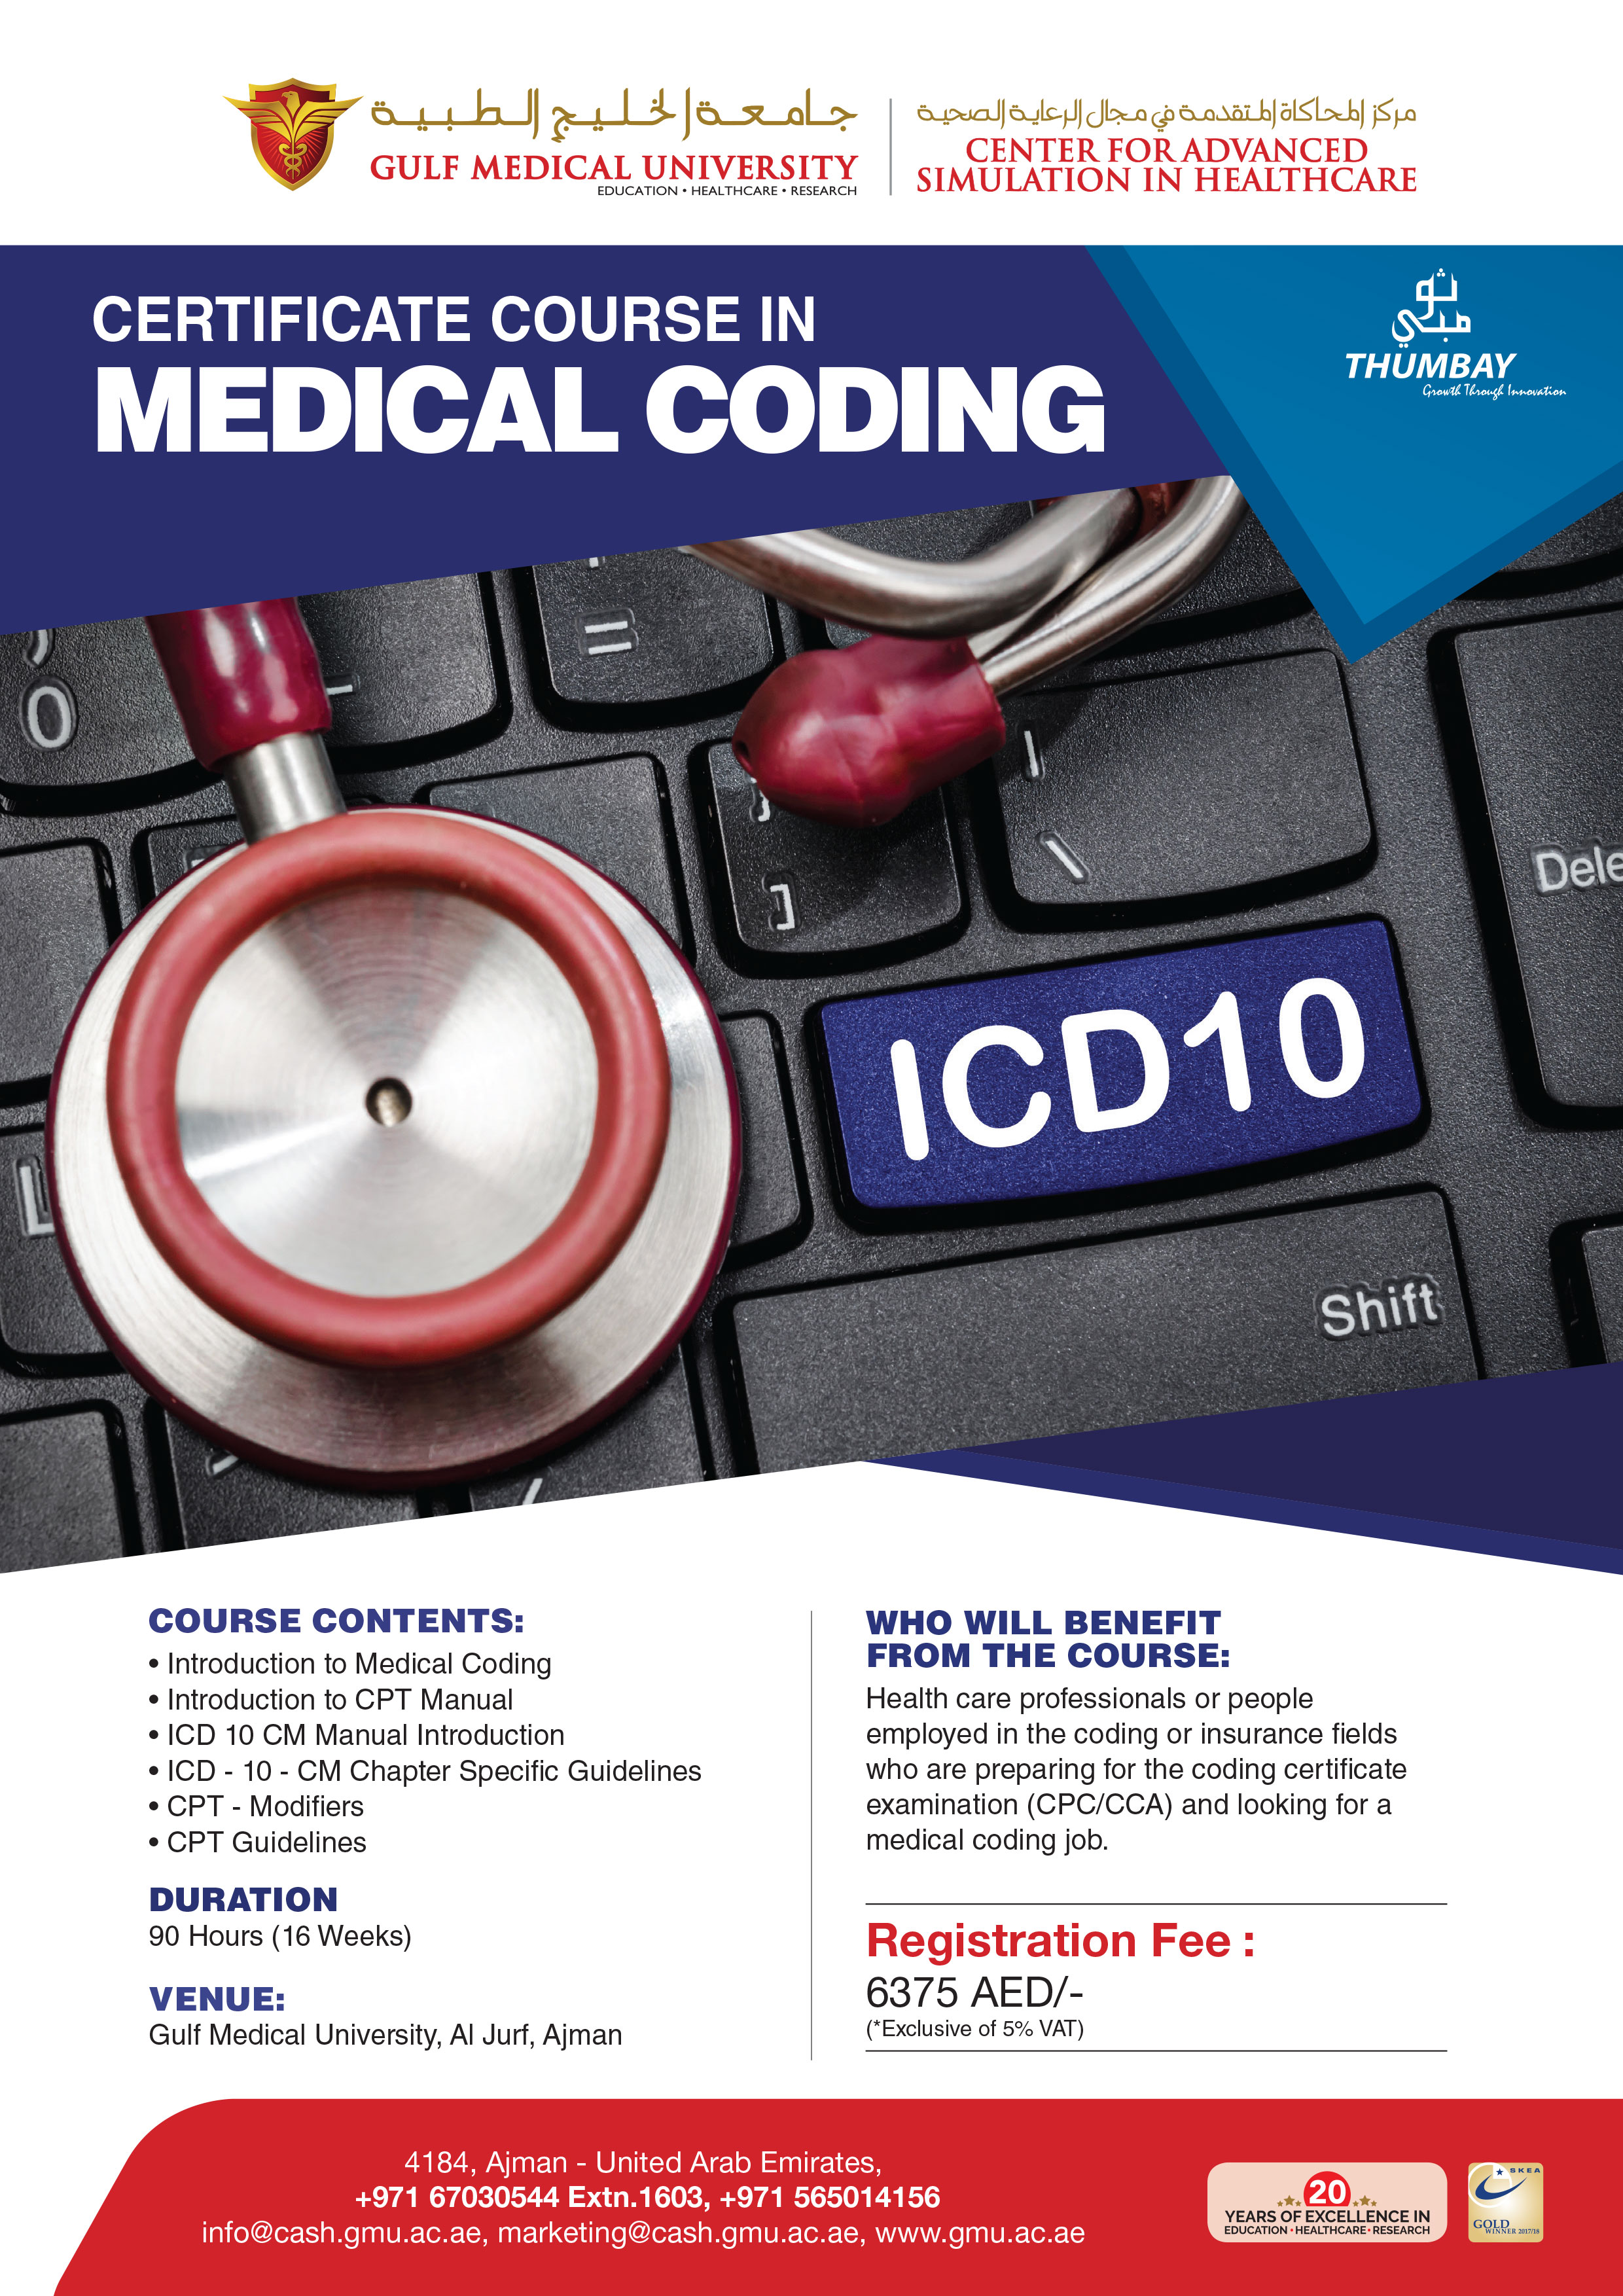 Certificate Course in Medical Coding - Gulf Medical University